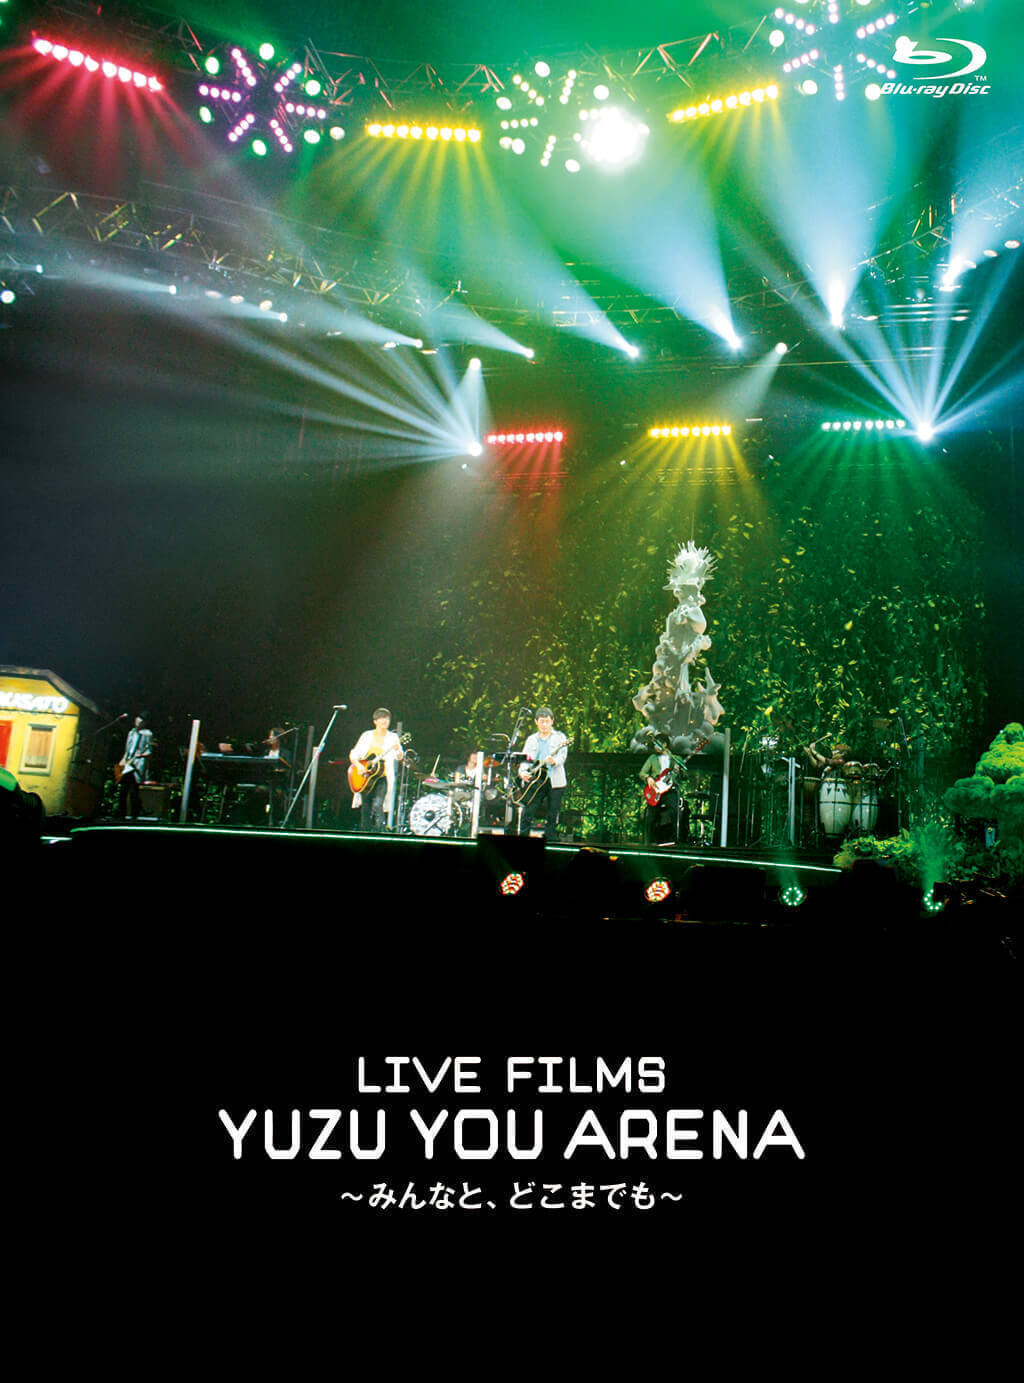 LIVE FILMS YUZU YOU ARENA 〜みんなと、どこまでも〜